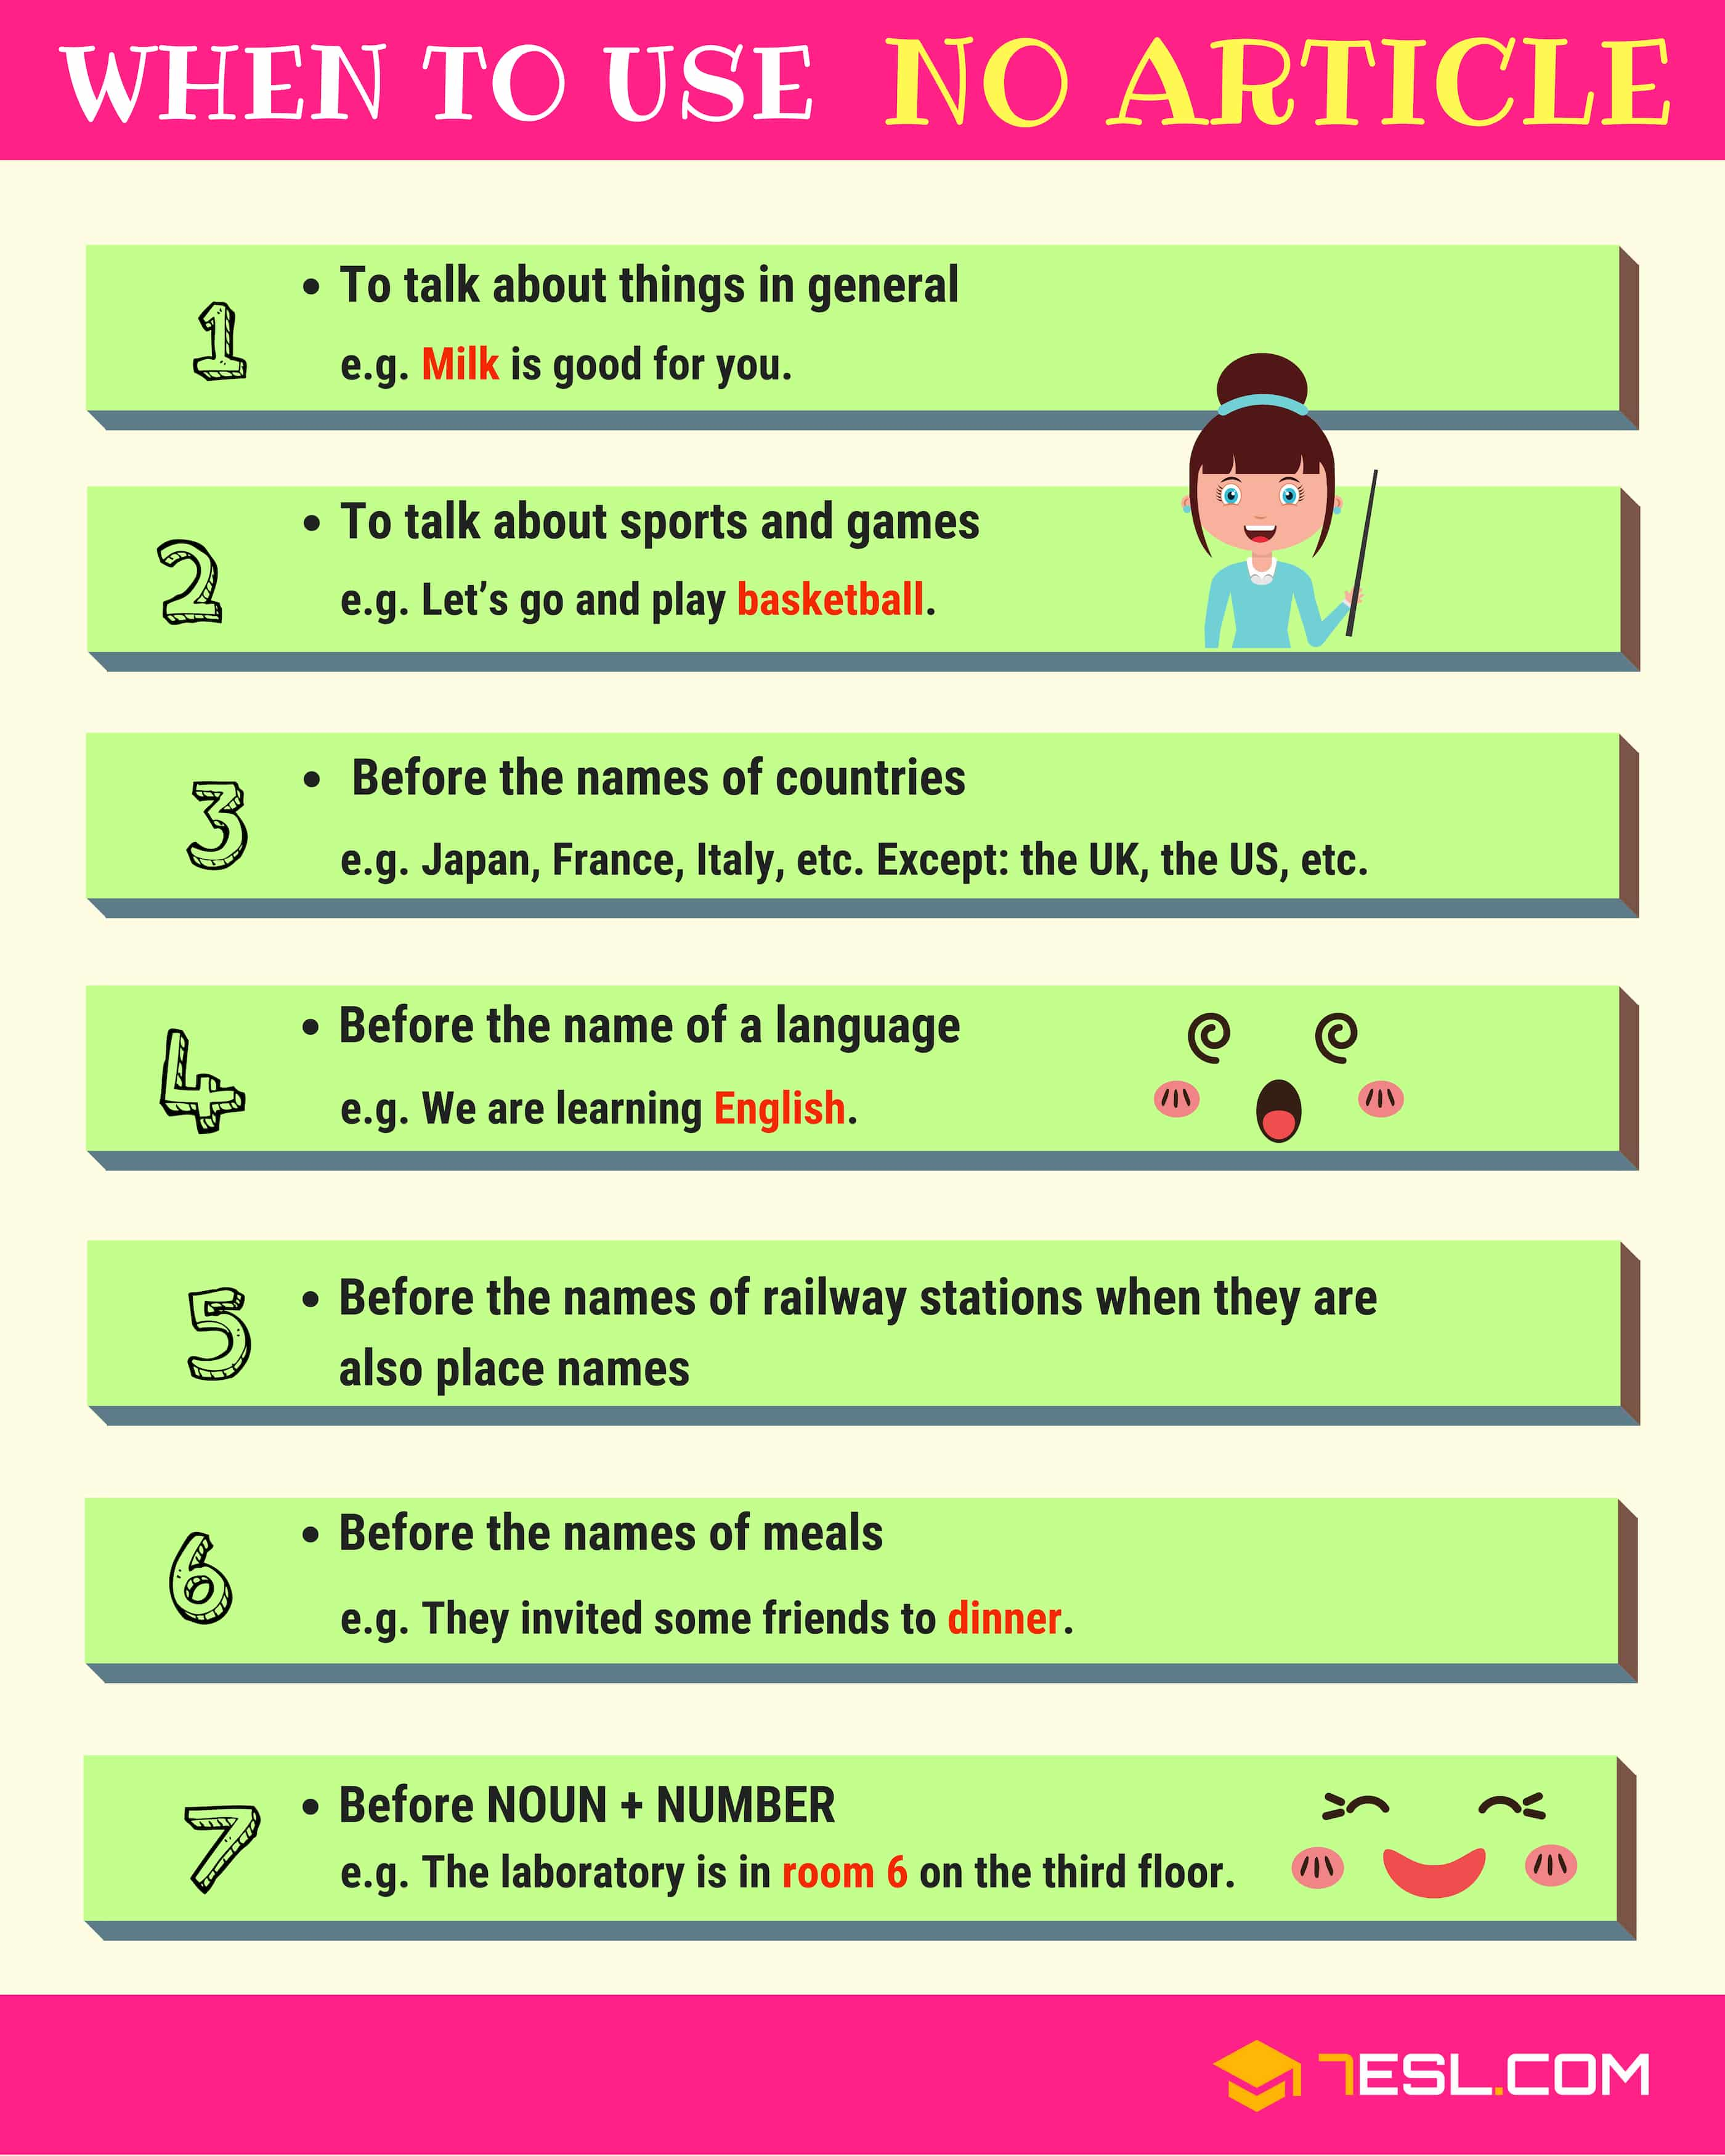 When To Use No Article In English With 7 Useful Rules